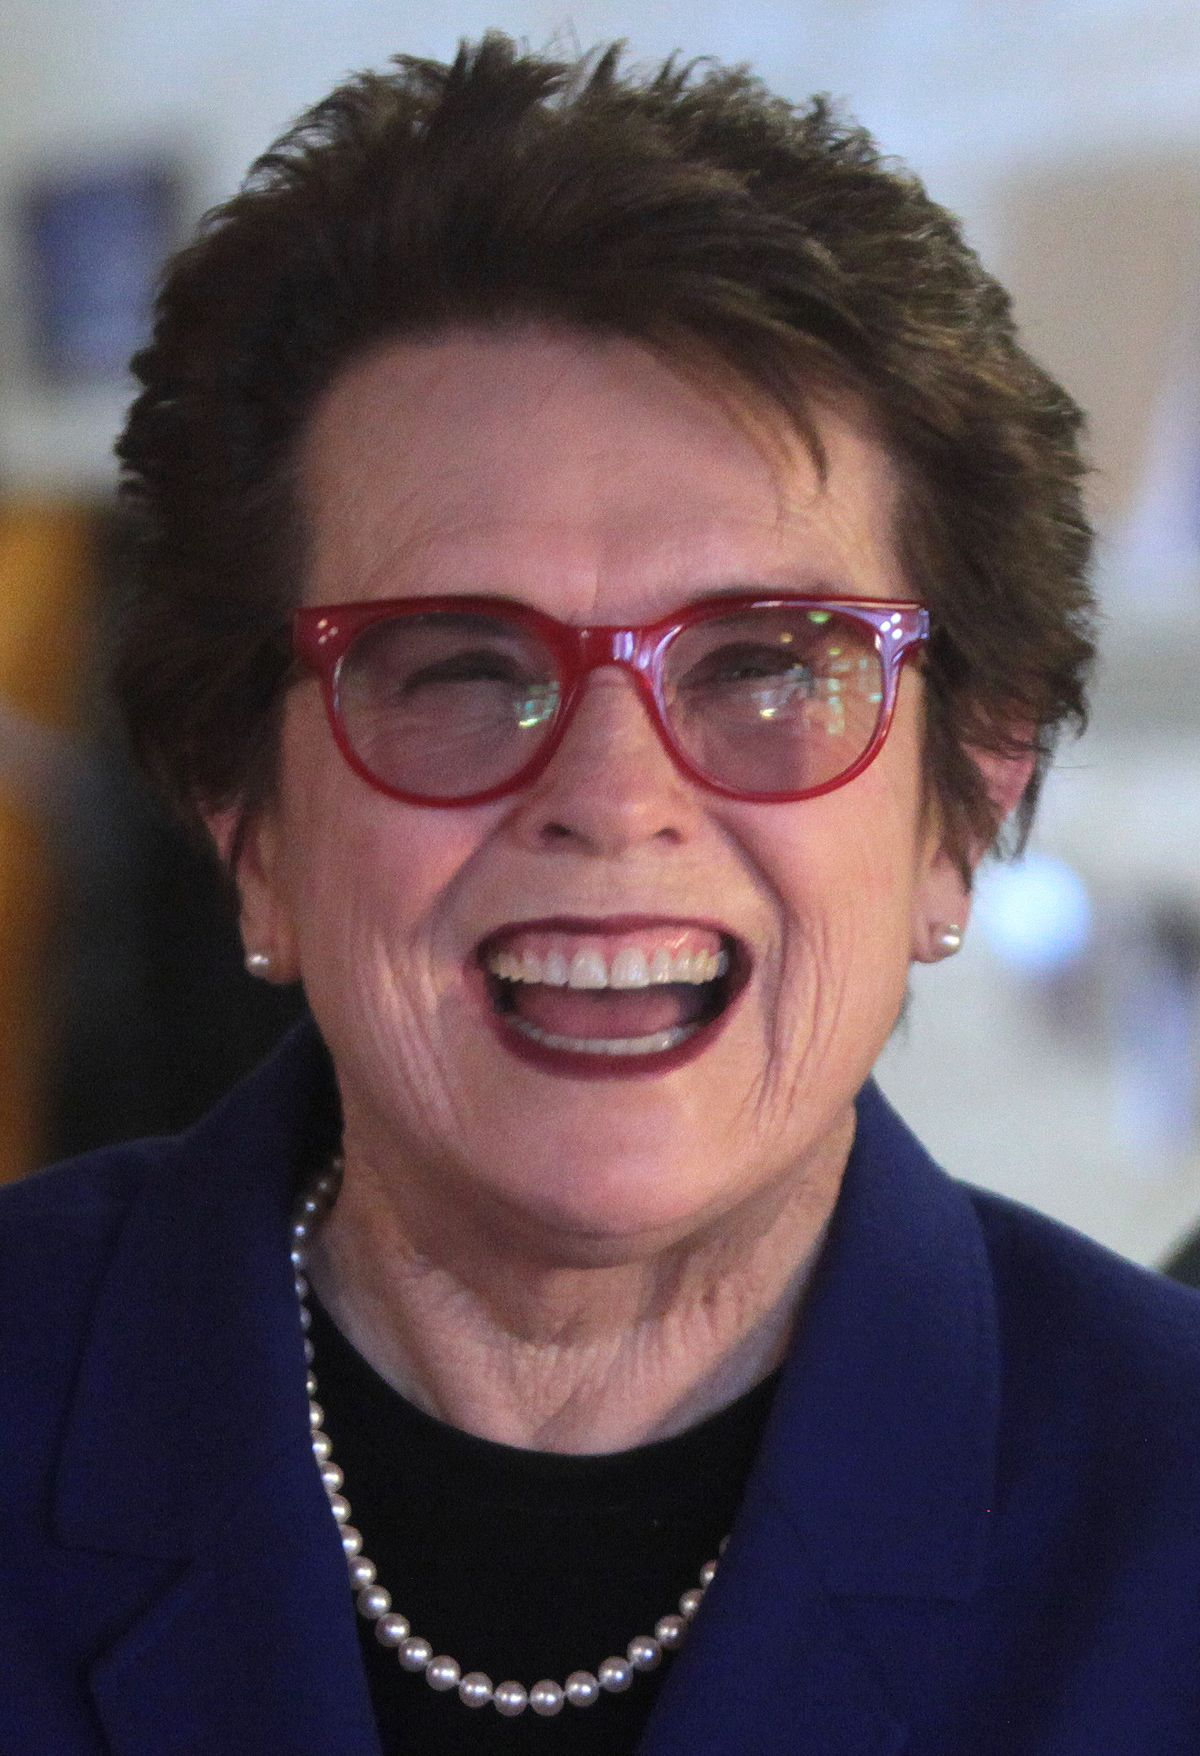 Billie Jean King 12 Grand Slam singles titles Billie Jean King 12 Grand Slam singles titles new images